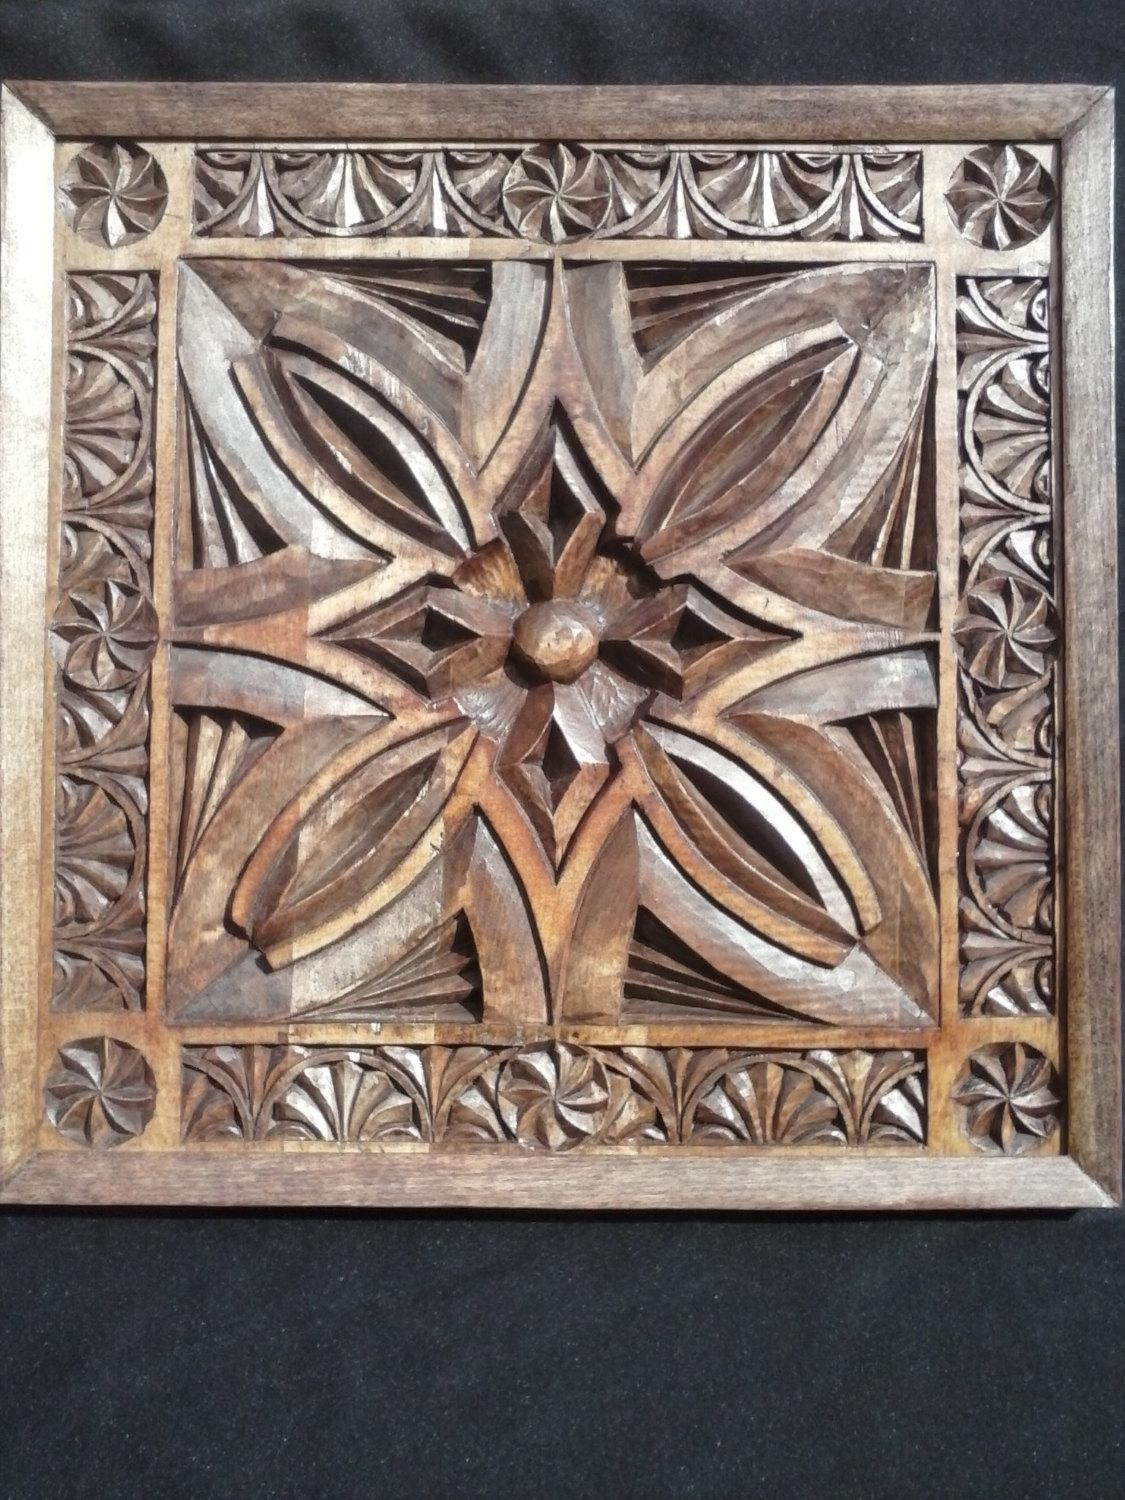 Wood Carving Wall Art Panel Chip Carvedhand In Tulip Wood With Regard To Stained Wood Wall Art (Image 19 of 20)